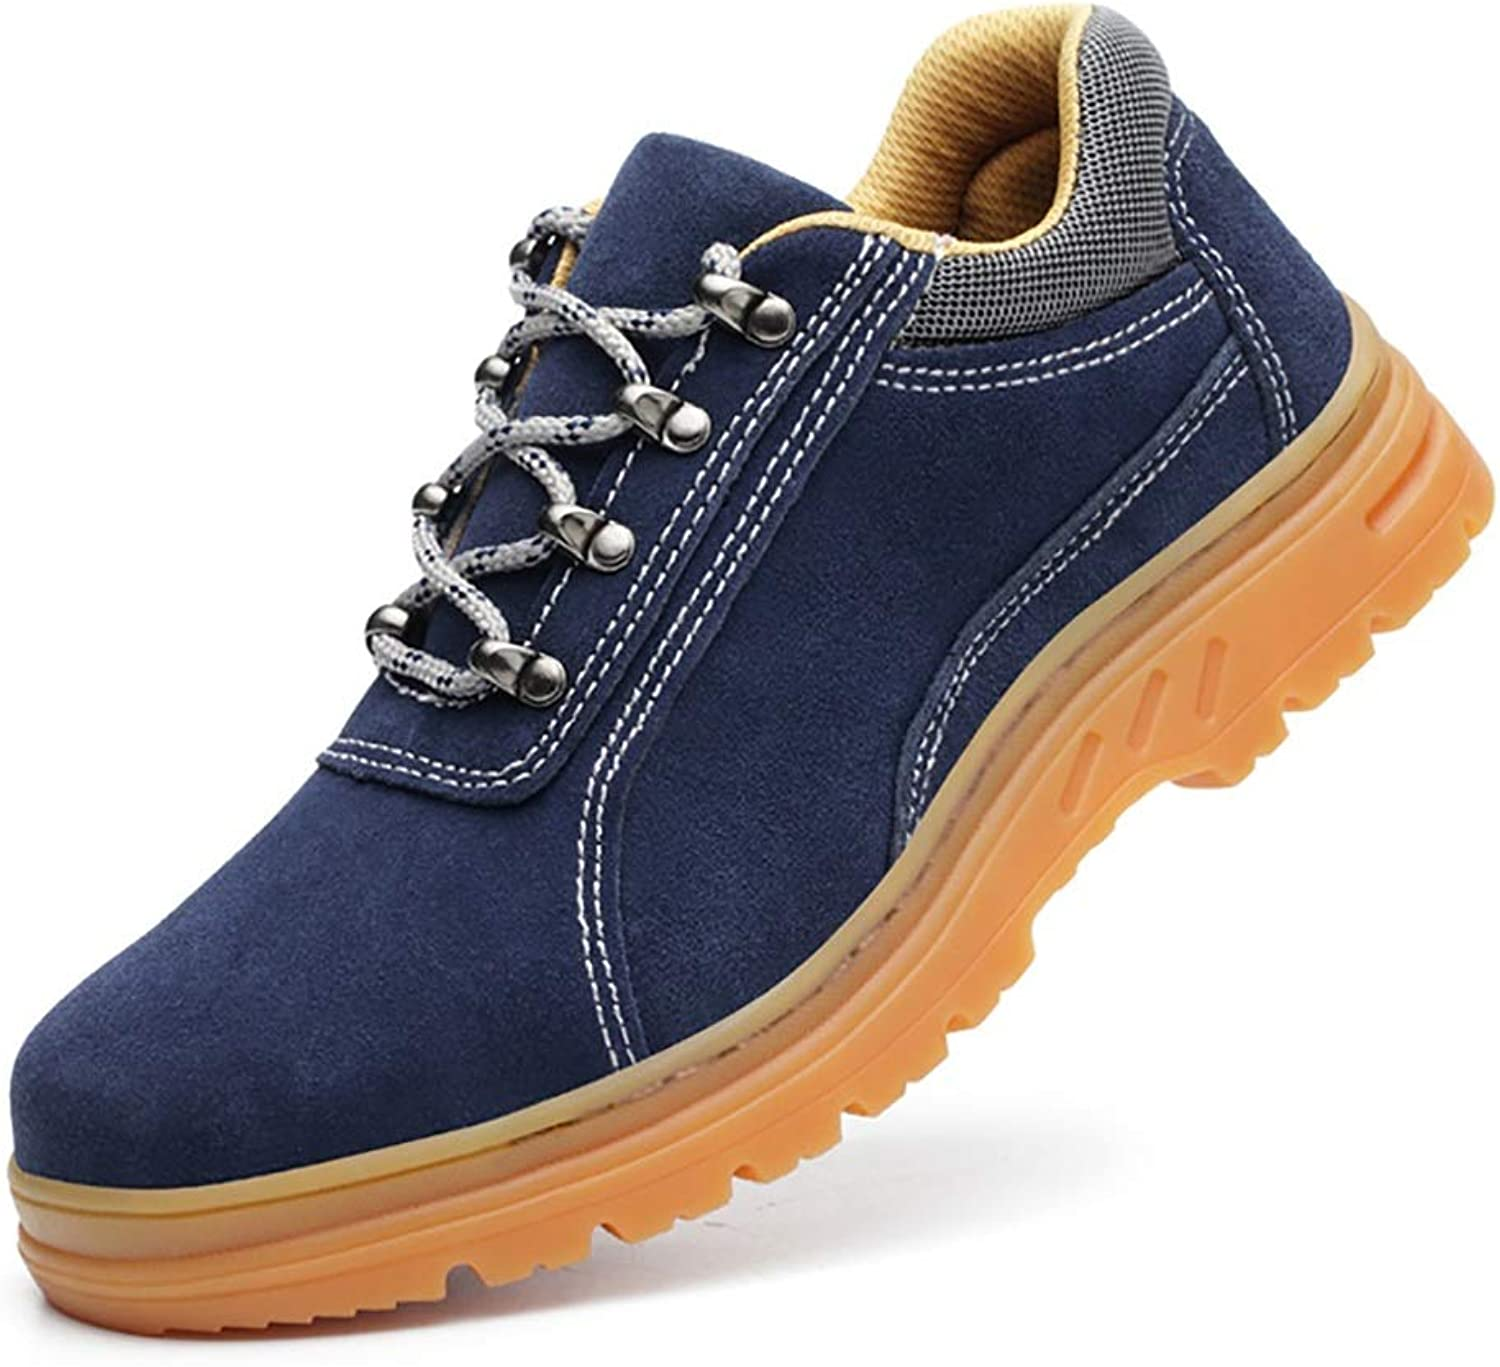 XBXZ safety shoes gym wear for men Anti-Piercing Safety shoes, mountaineering shoes, labor insurance training, canvas low wear, anti slip, construction site shoes on cloud running shoes work boots